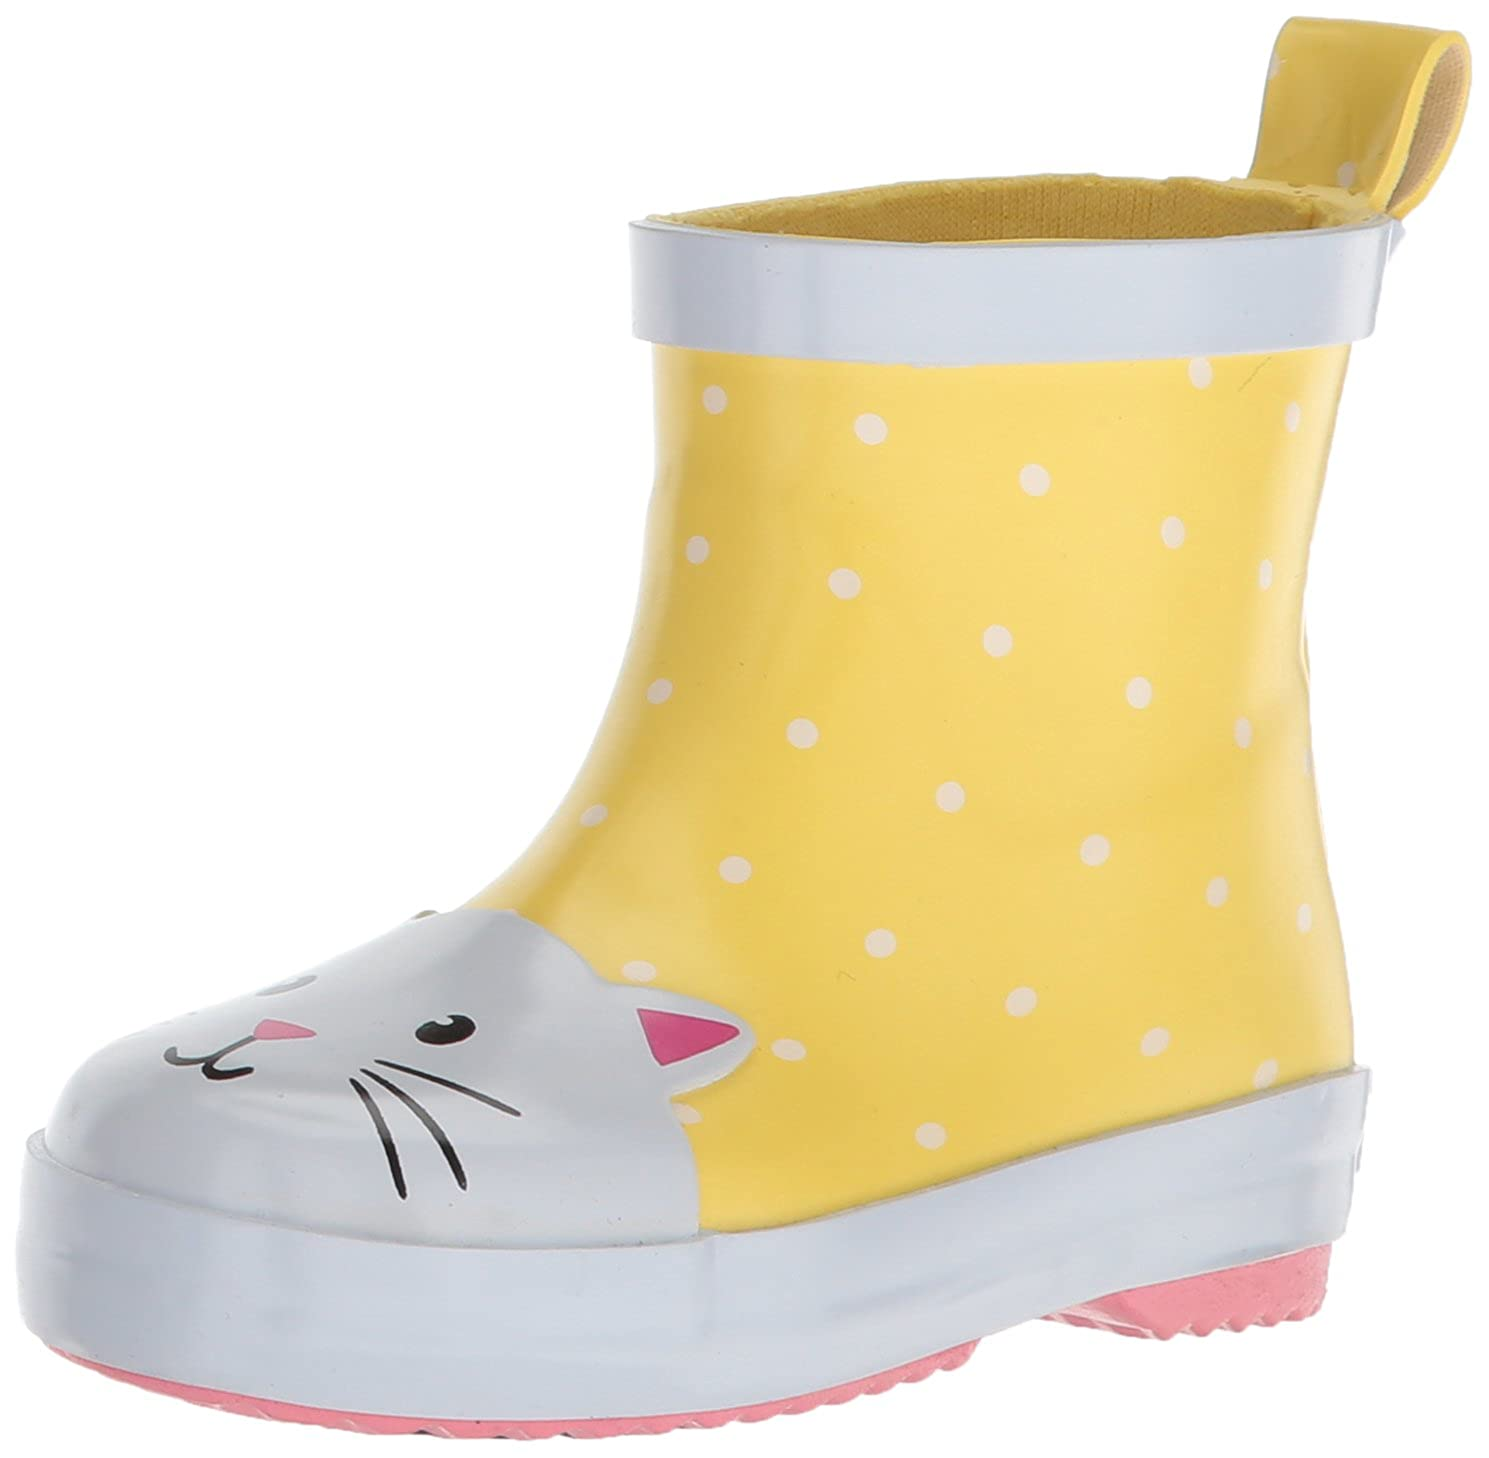 Carters Kids Rainboot Rain Boot,